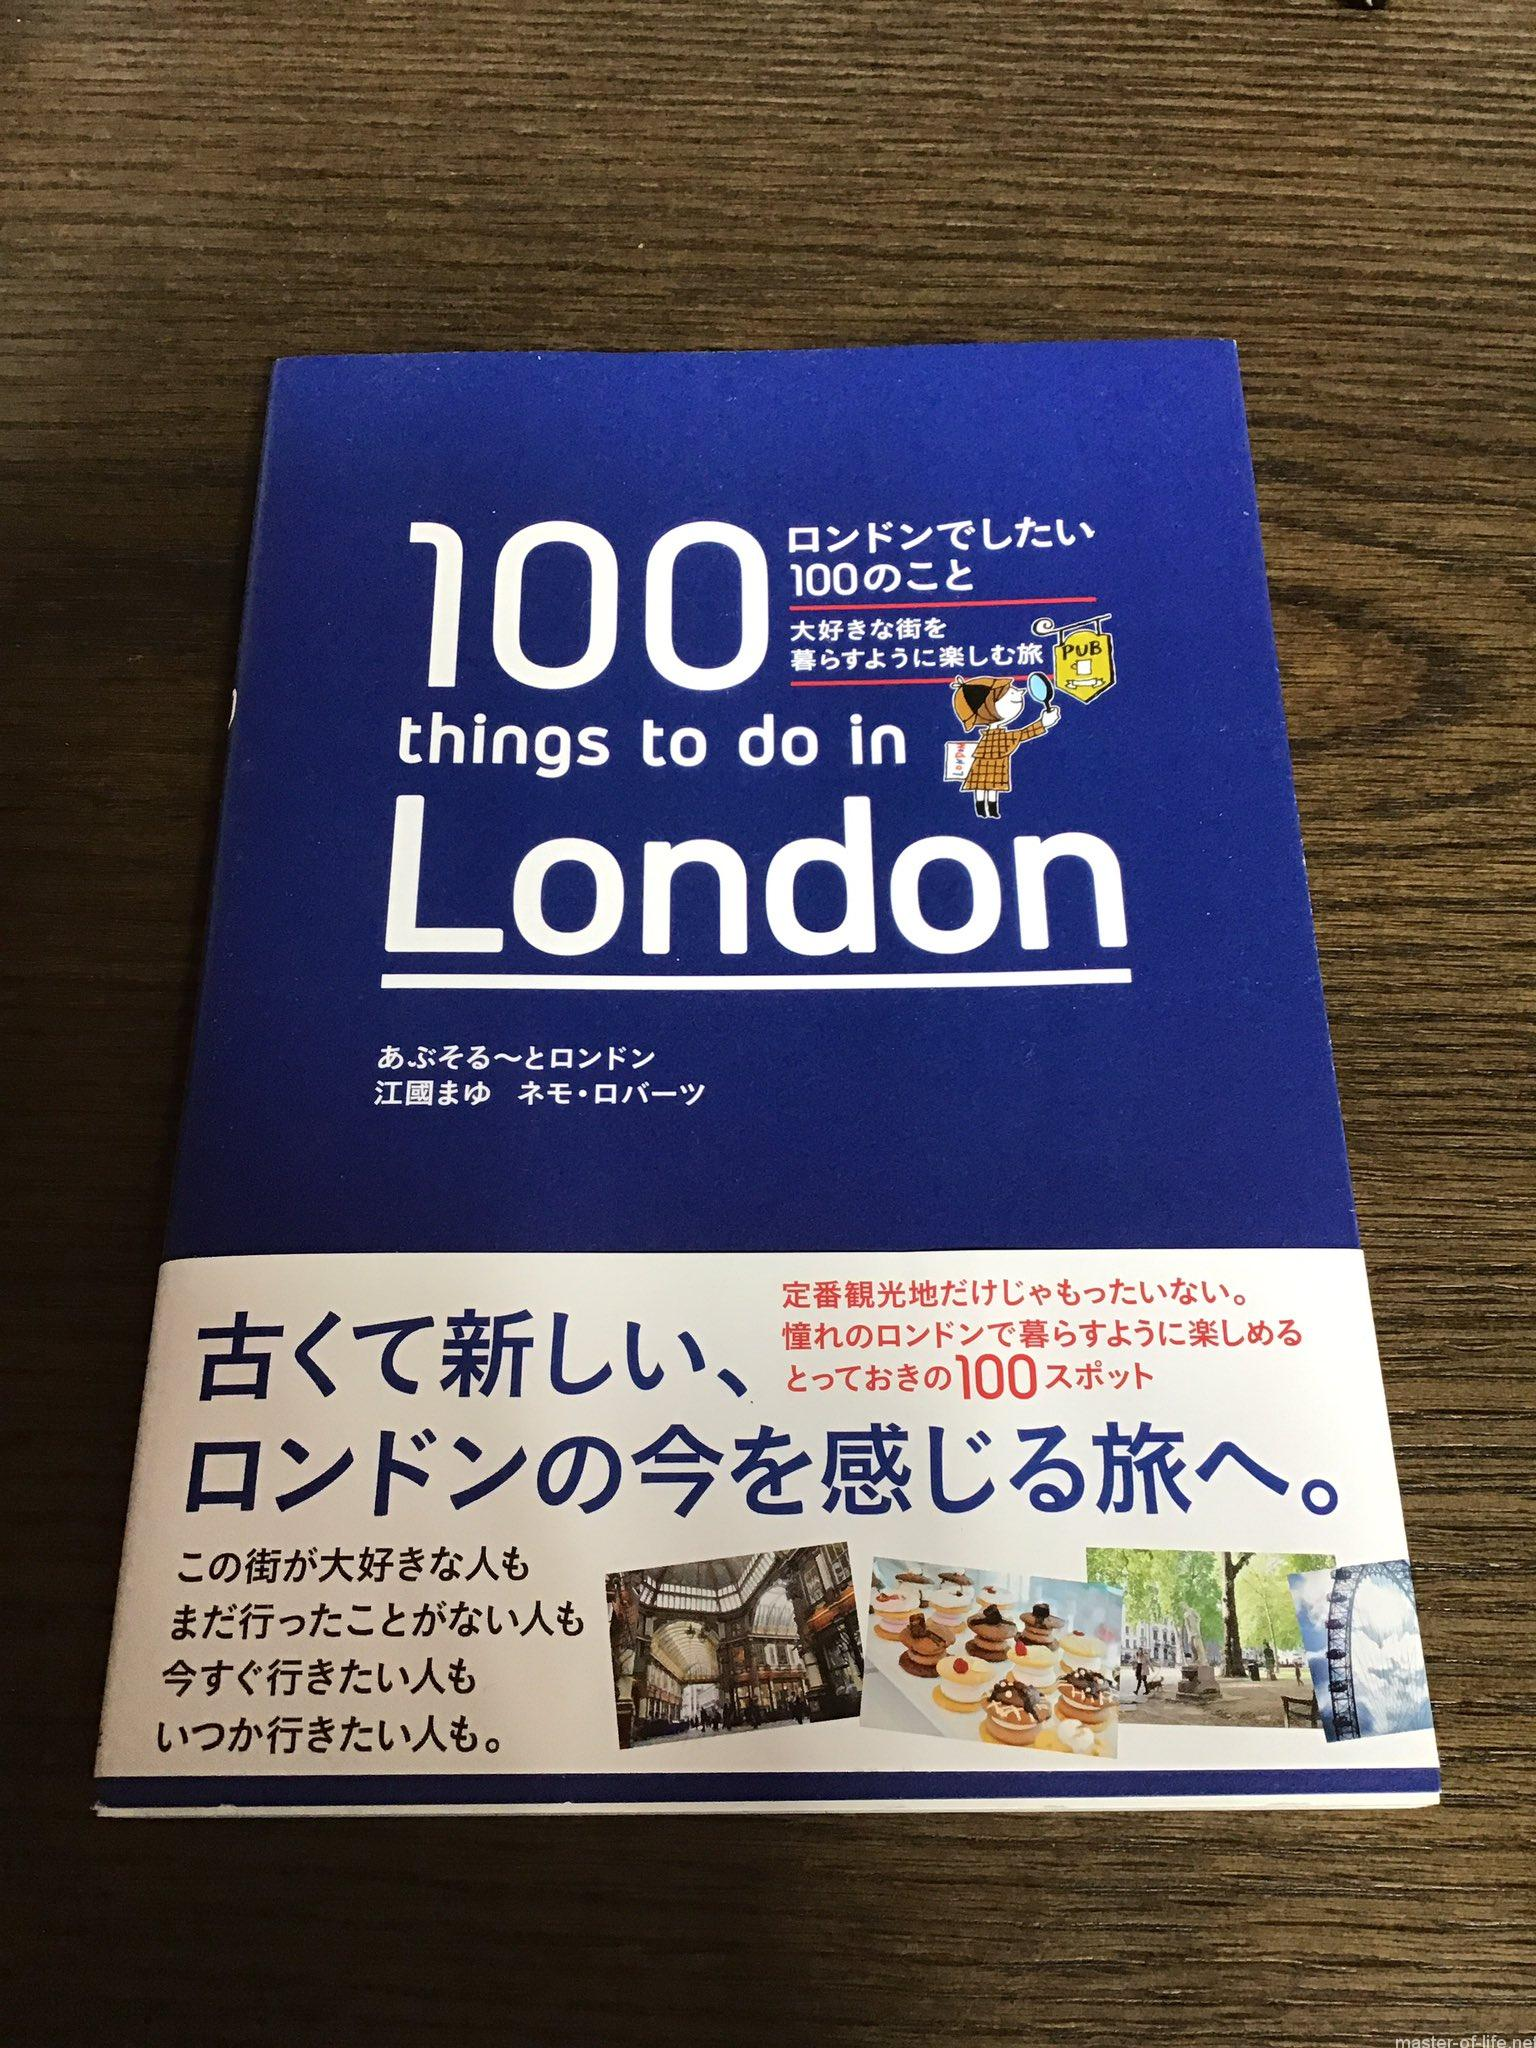 100 things to do in London